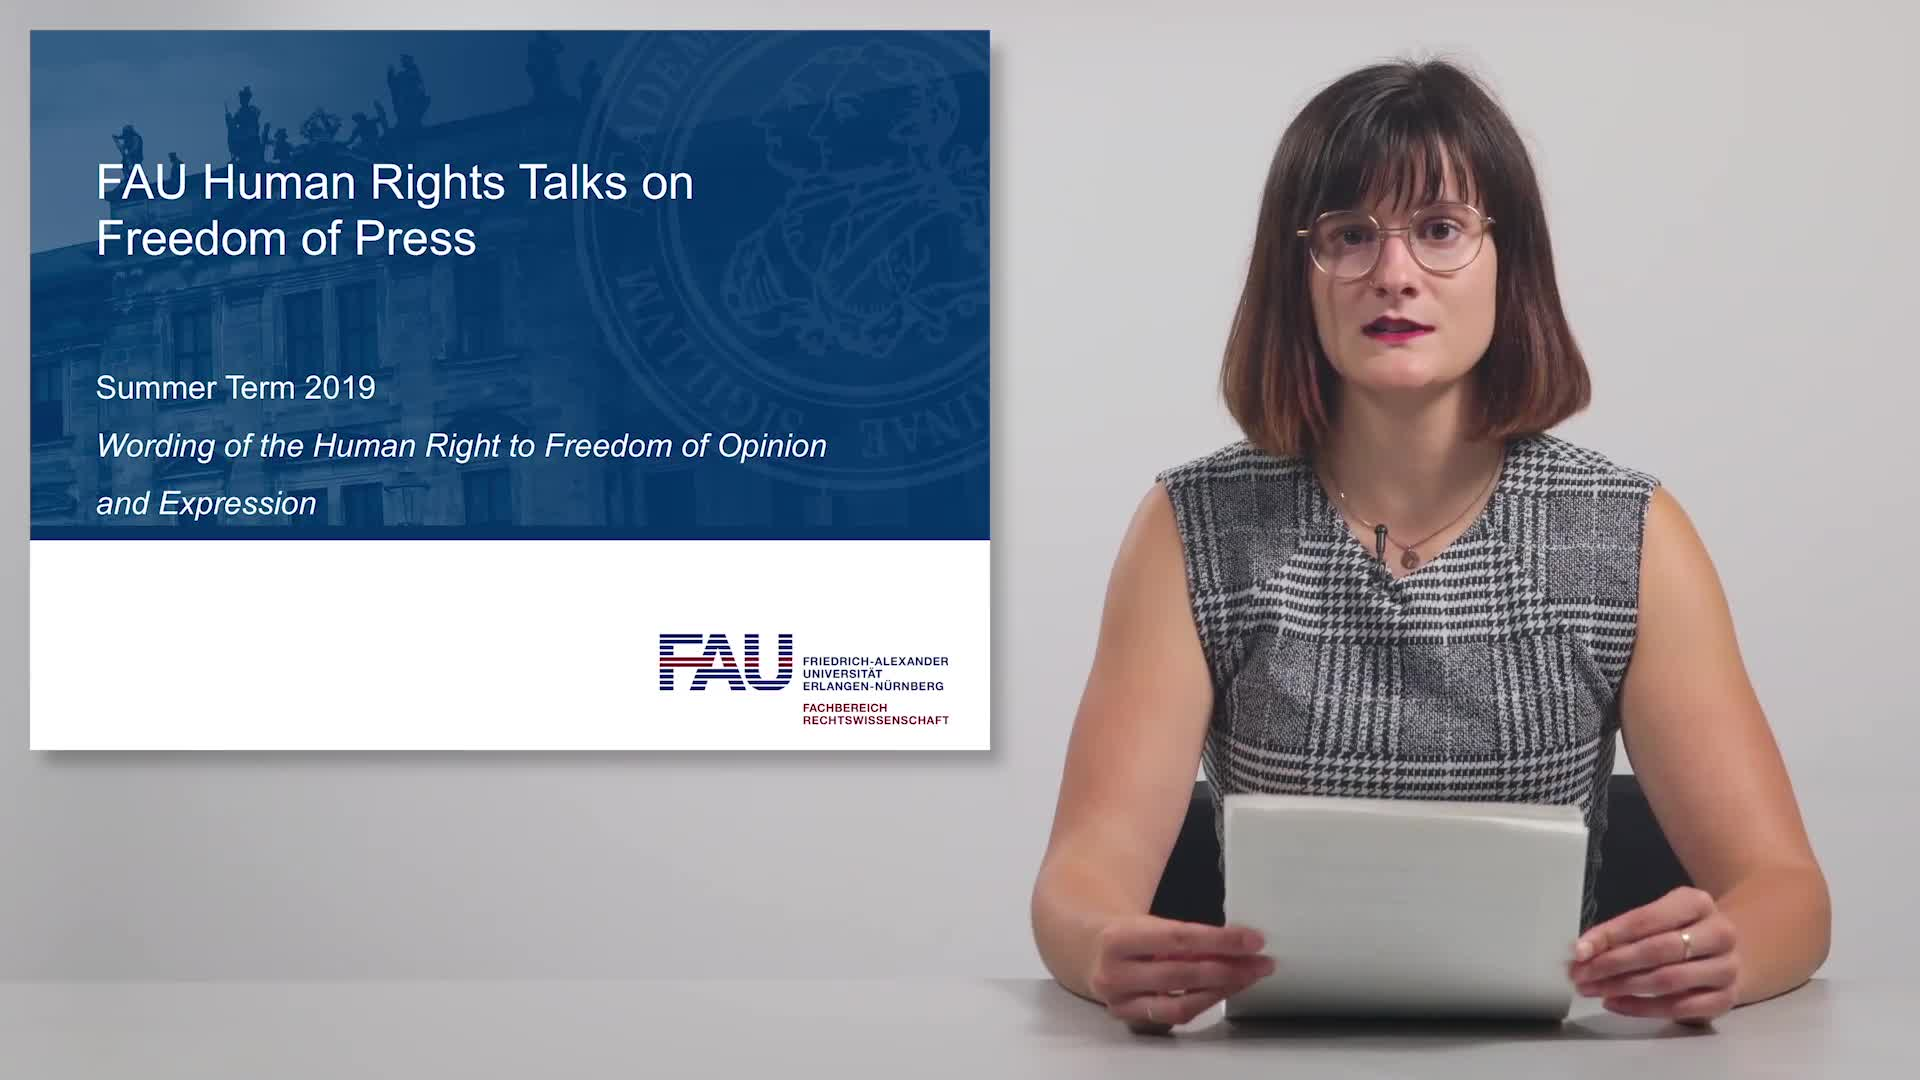 FAU Human Rights Talks – Summer Term 2019: Wording of the Human Right to Freedom of Opinion and Expression preview image